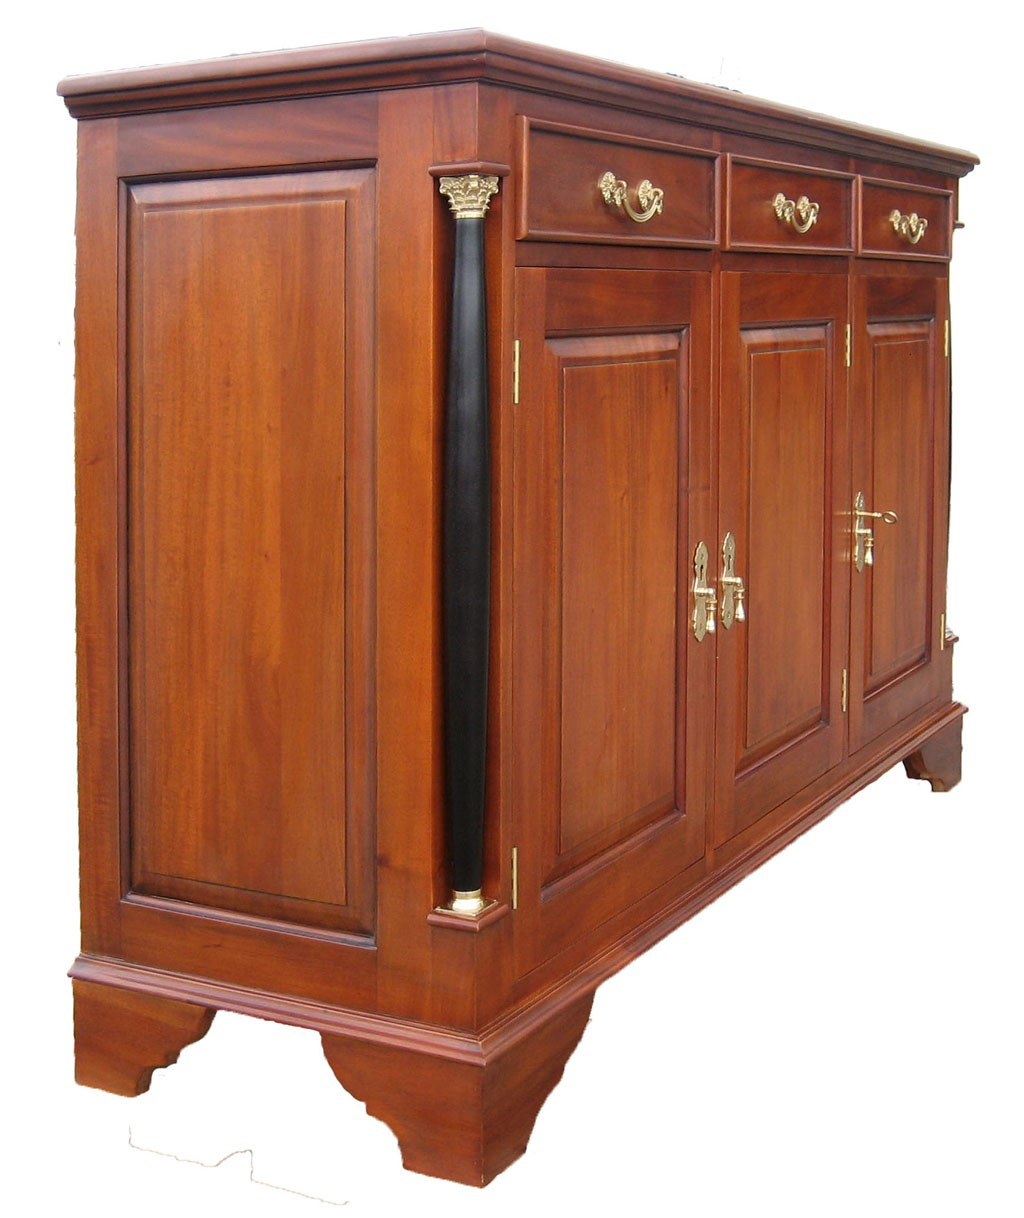 sideboard biedermeier antik anrichte stil kirsche massiv. Black Bedroom Furniture Sets. Home Design Ideas